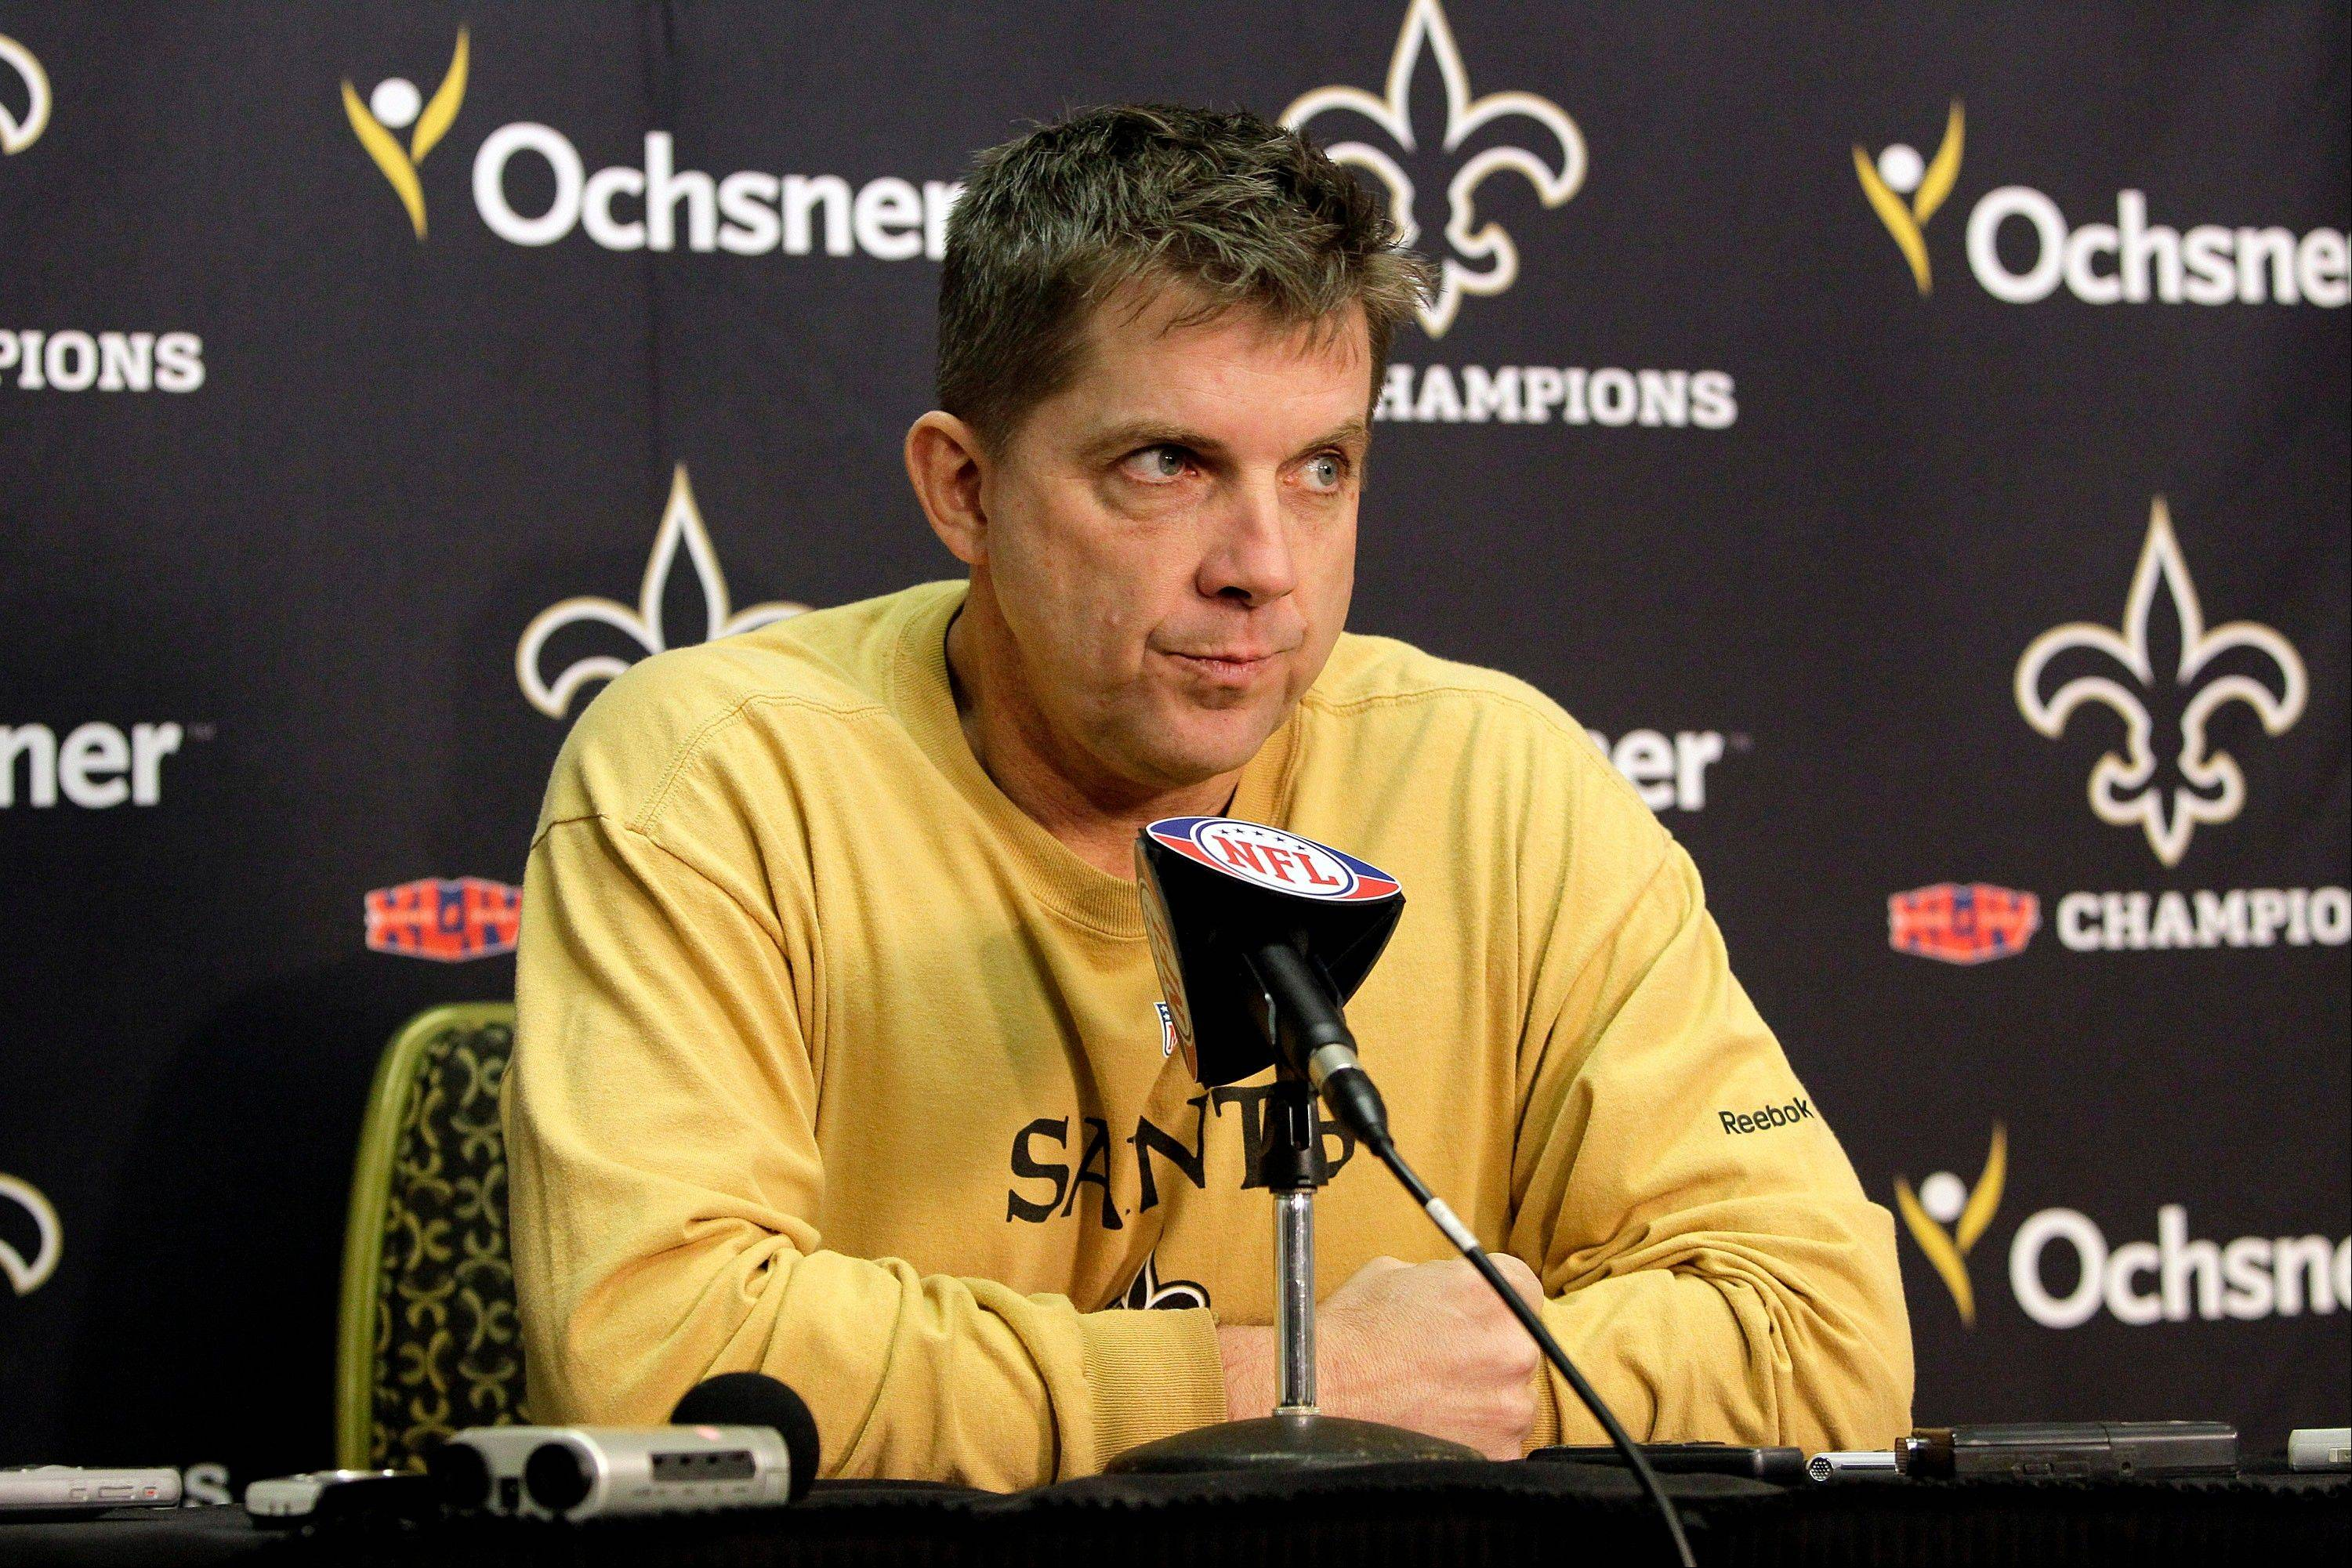 Naperville's stance understandable but Payton still a dubious character